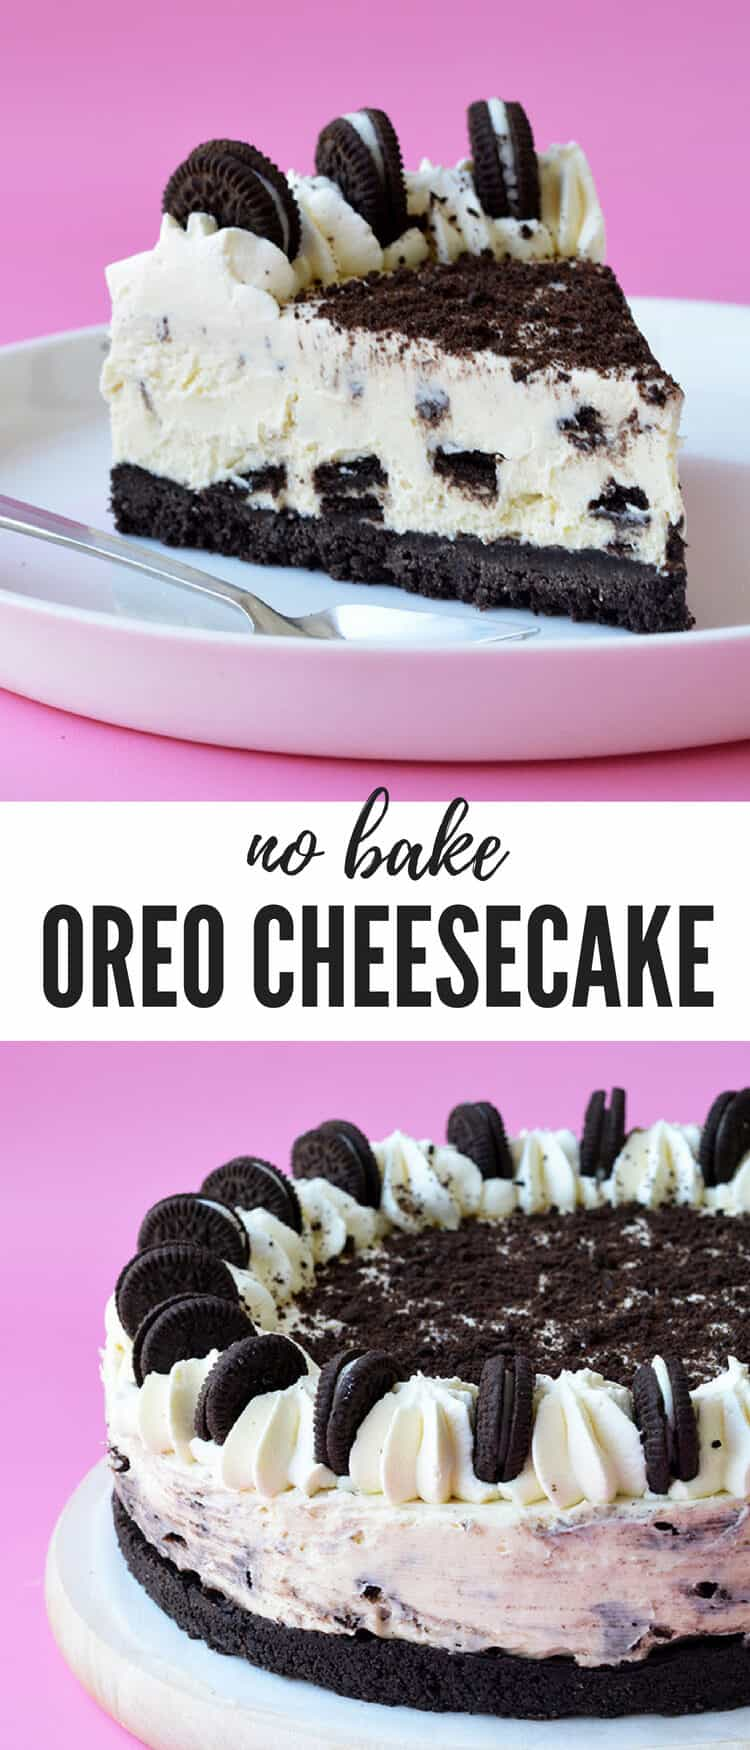 This No Bake Oreo Cheesecake is the ultimate cookies and cream dessert. With a crunchy Oreo crust and a creamy cheesecake filling, it's so easy to make! You don't even need to turn the oven on. Recipe from sweetestmenu.com #Oreos #cheesecake #dessert